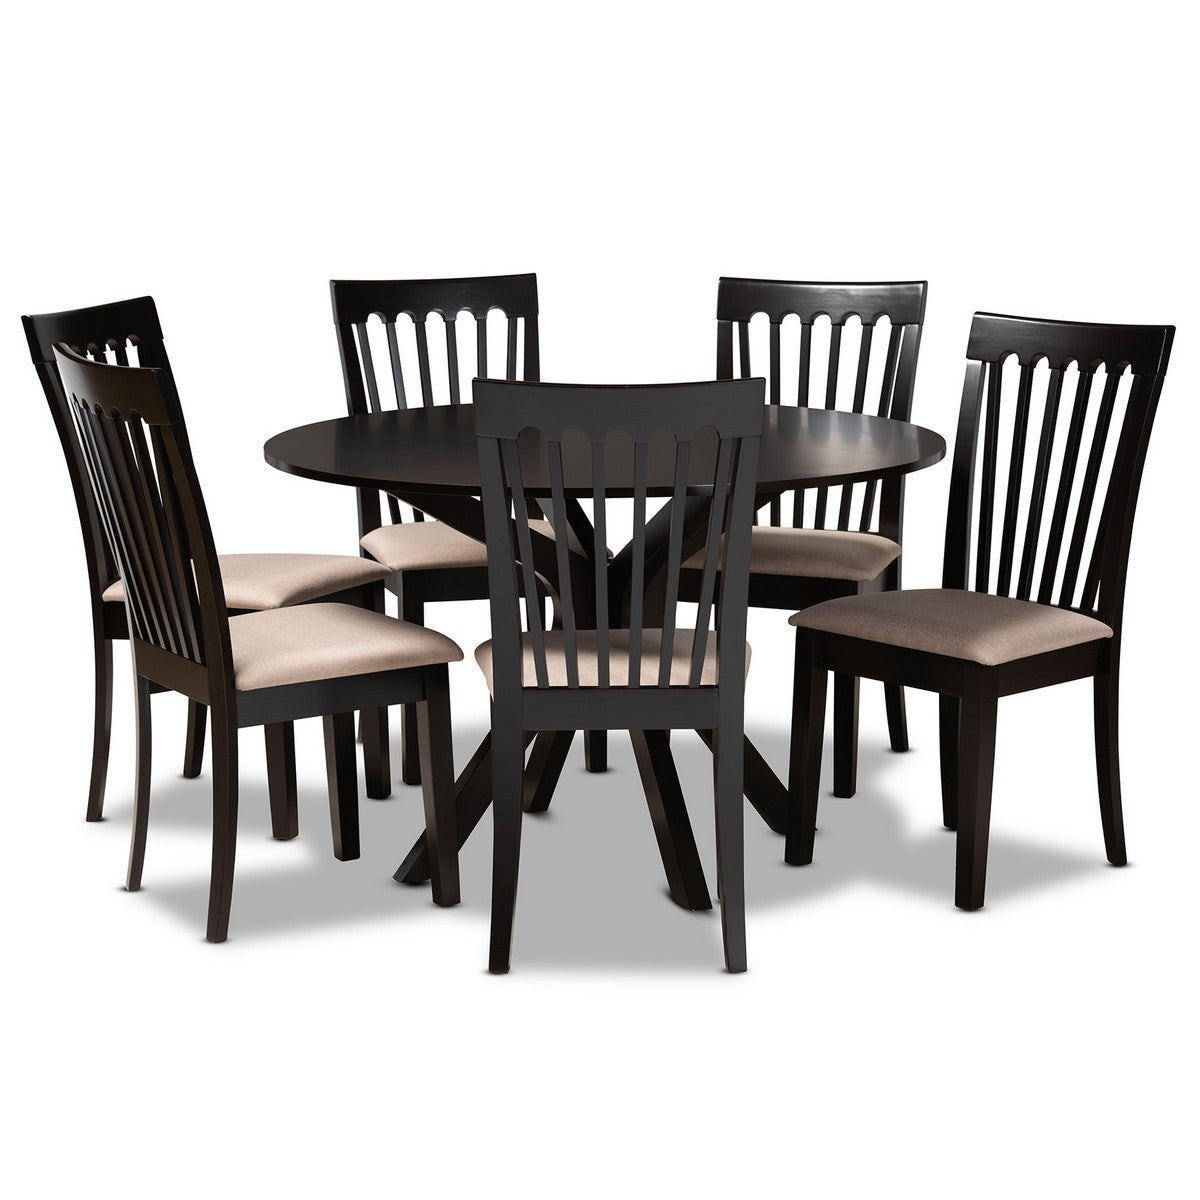 Baxton Studio Lore Modern and Contemporary Sand Fabric Upholstered and Dark Brown Finished Wood 7-Piece Dining Set Baxton Studio-Dining Sets-Minimal And Modern - 1